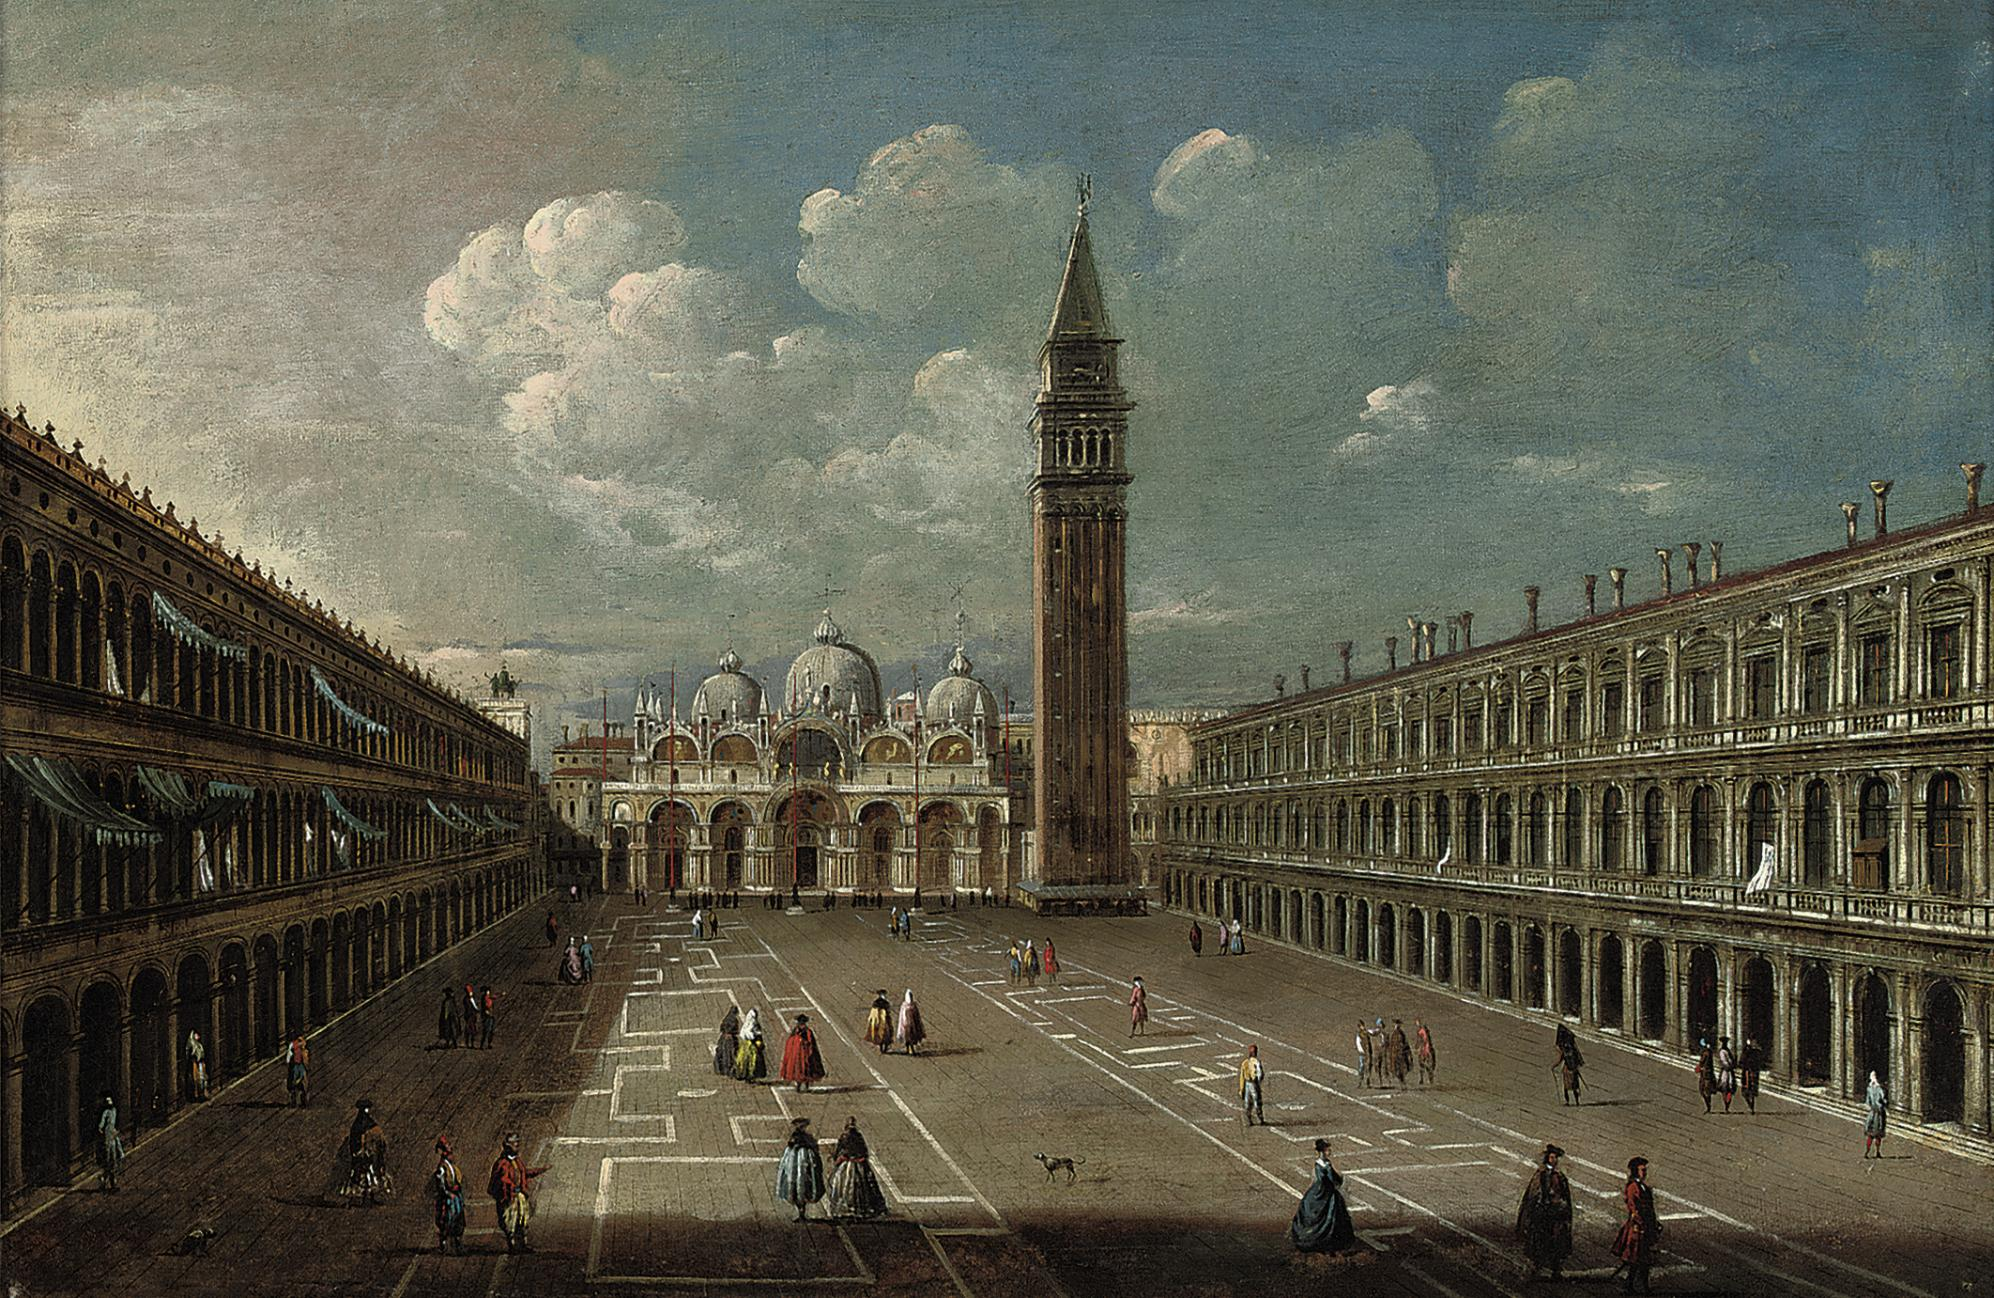 Piazza San Marco, Venice, looking East, with the Torre dell'Orologio, the Campanile, the Doge's Palace and the Procuratie Nuove